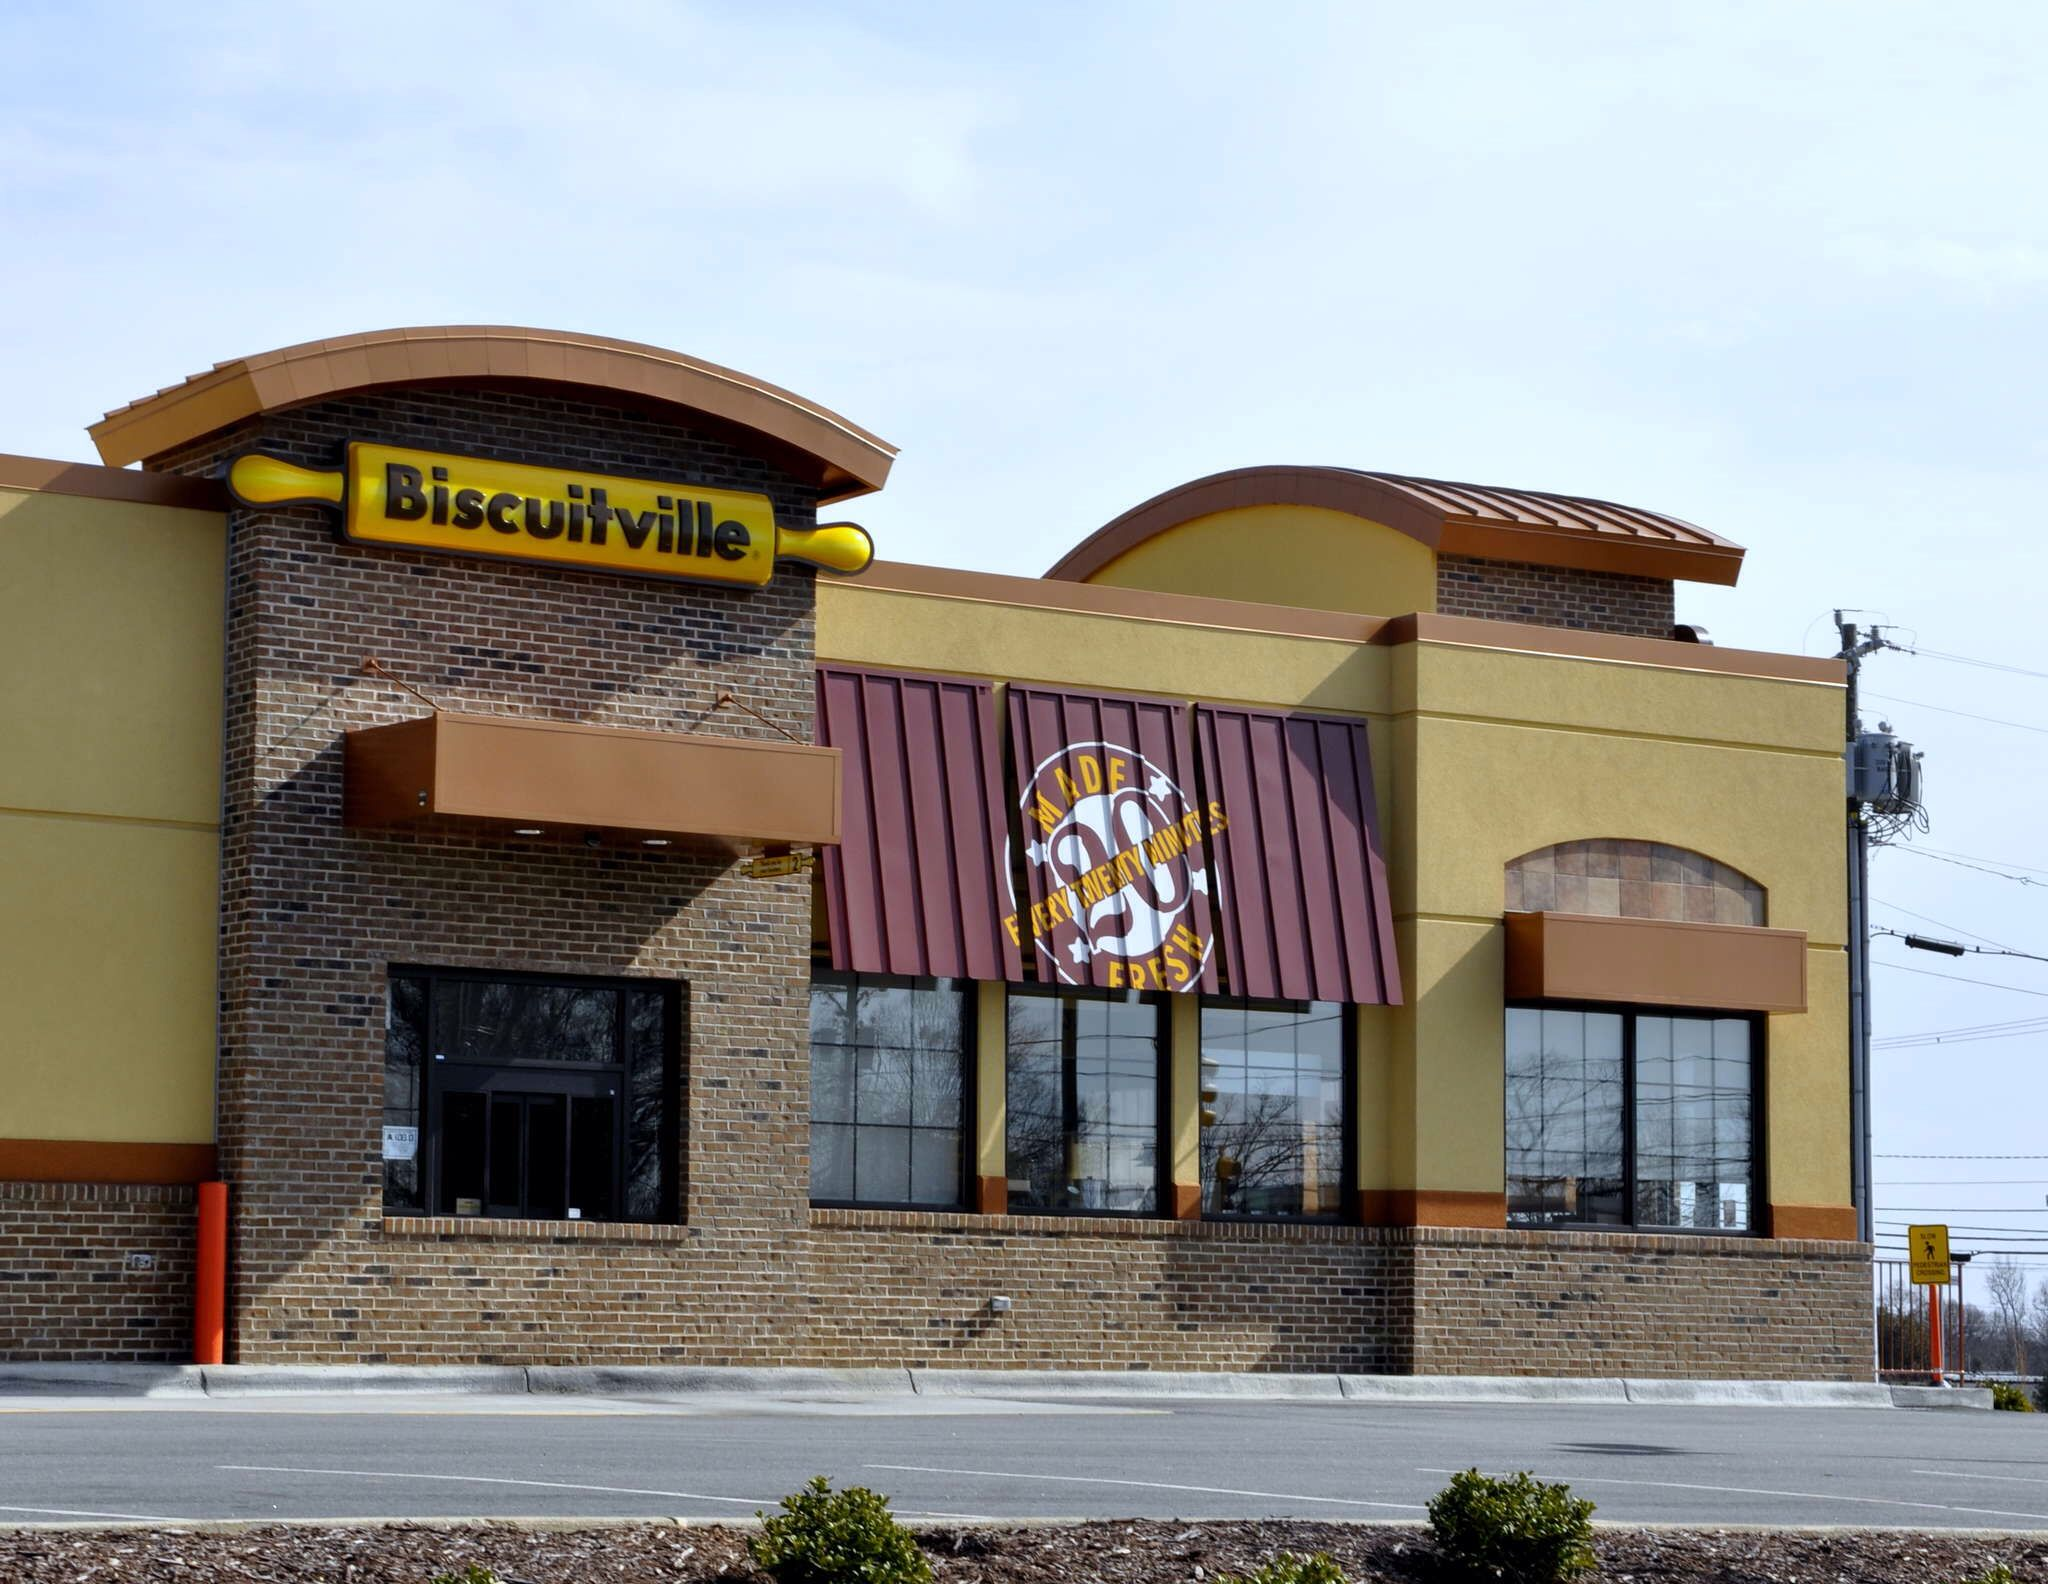 Biscuitville An Excellent Quality Fast Food Breakfast Restaurant In